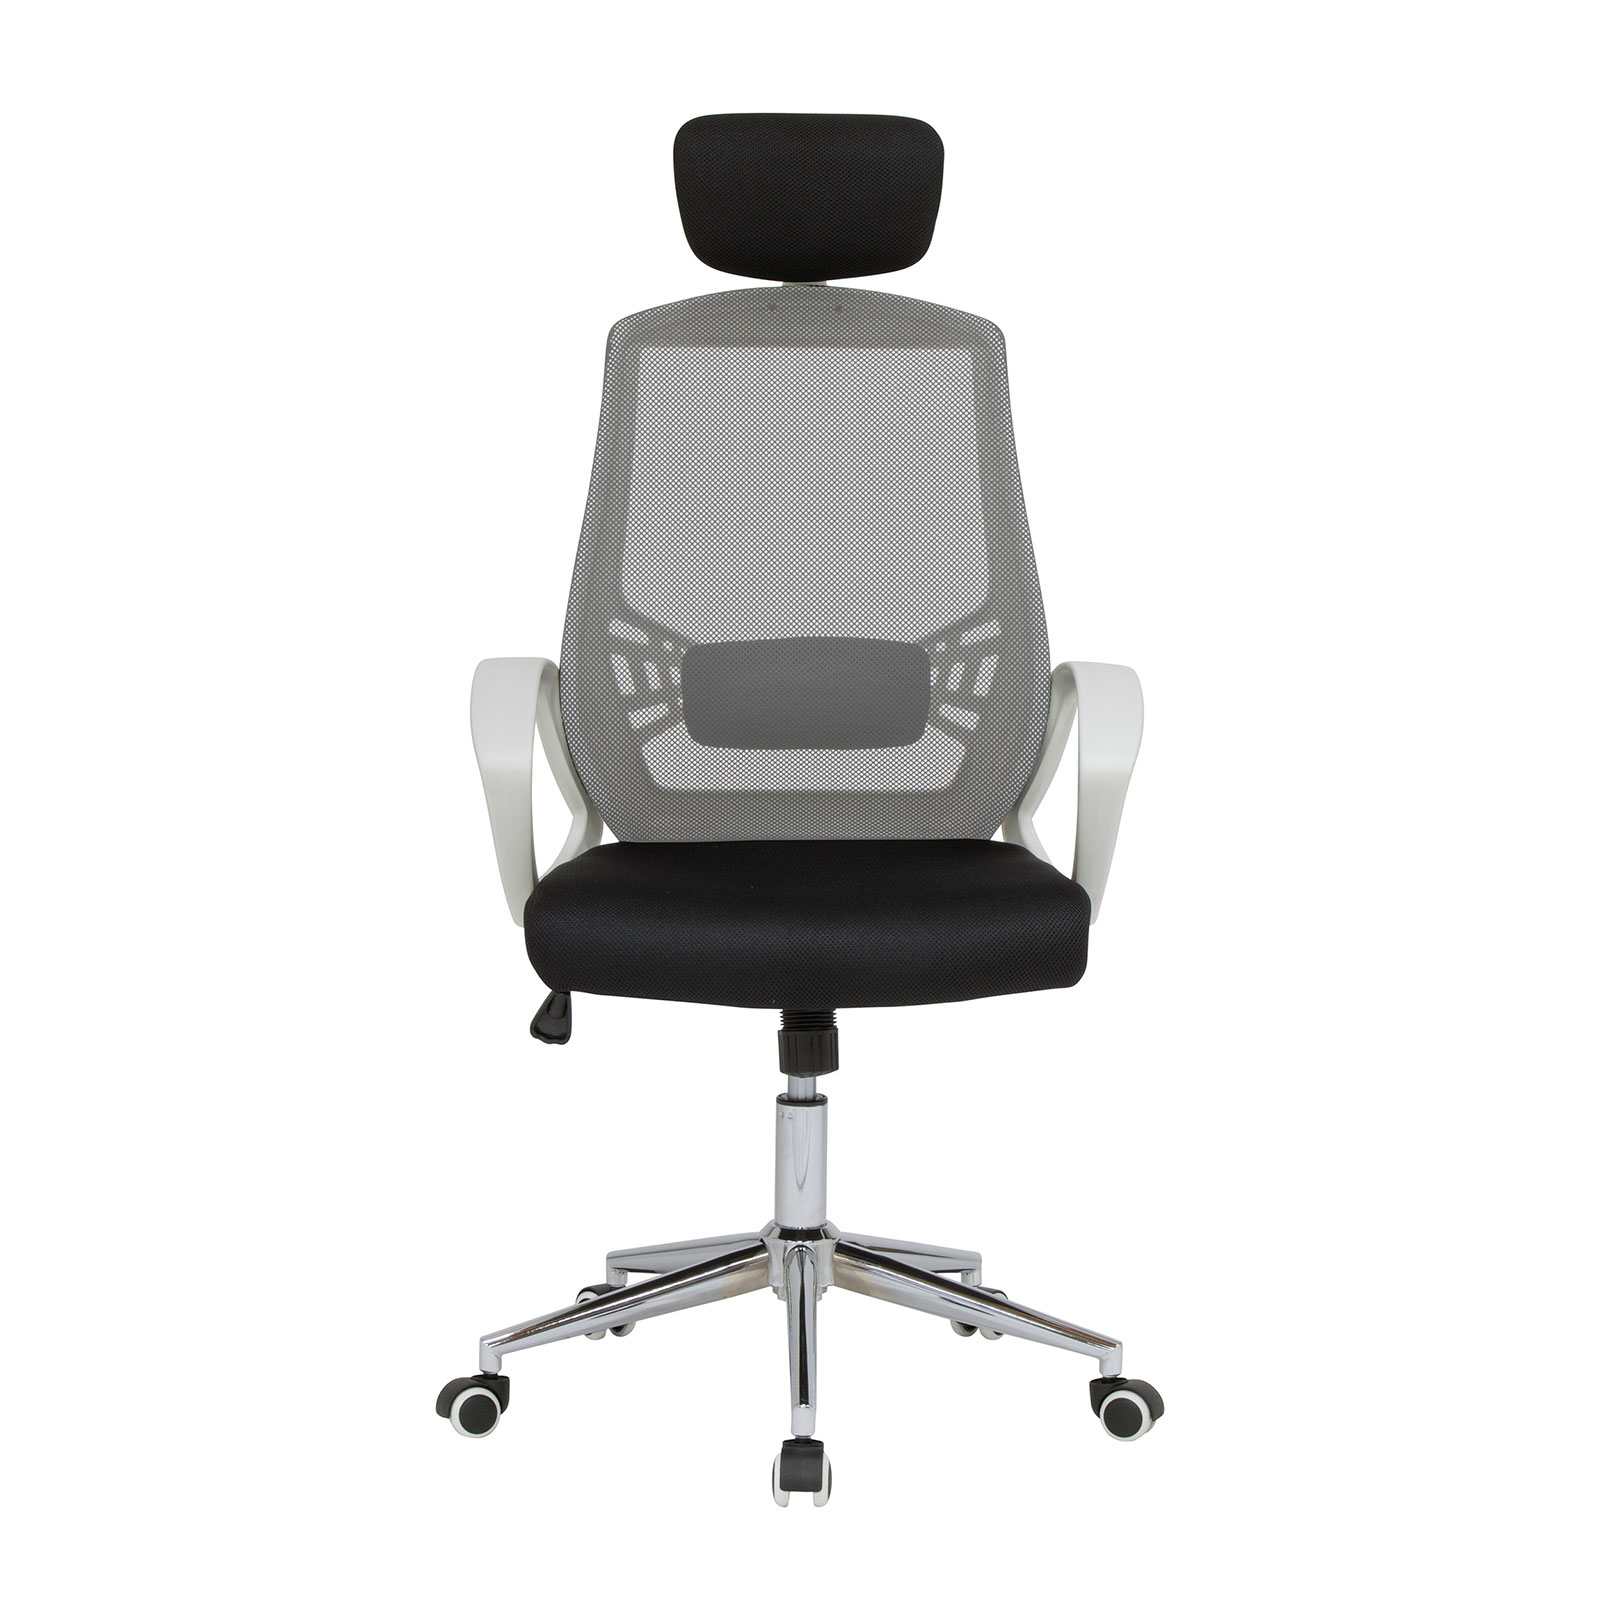 10663-High-Back-Mesh-Managers-Chair-front